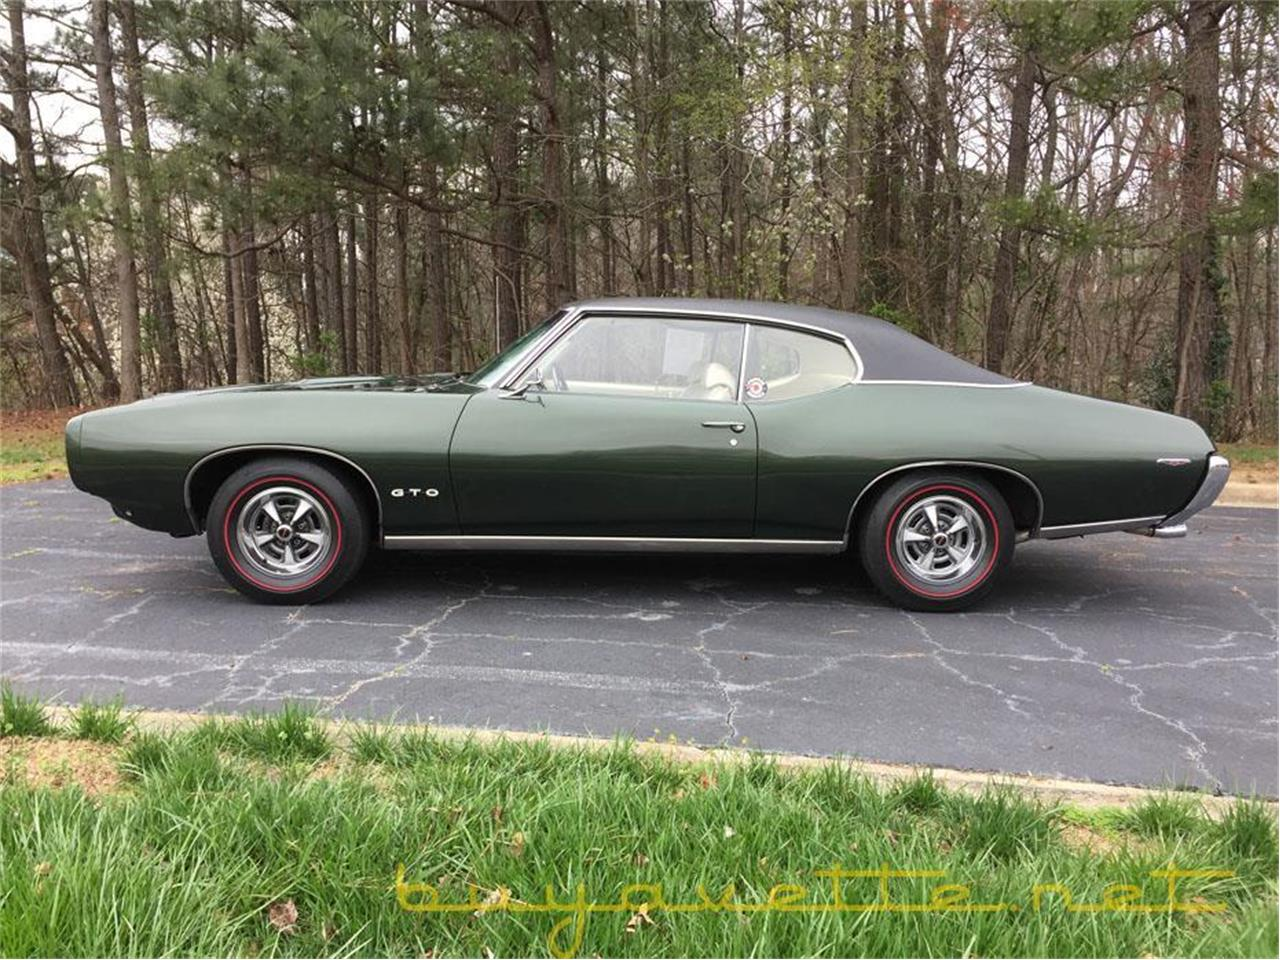 Large Picture of Classic '69 Pontiac GTO located in Georgia - $37,999.00 Offered by Buyavette - MZ78